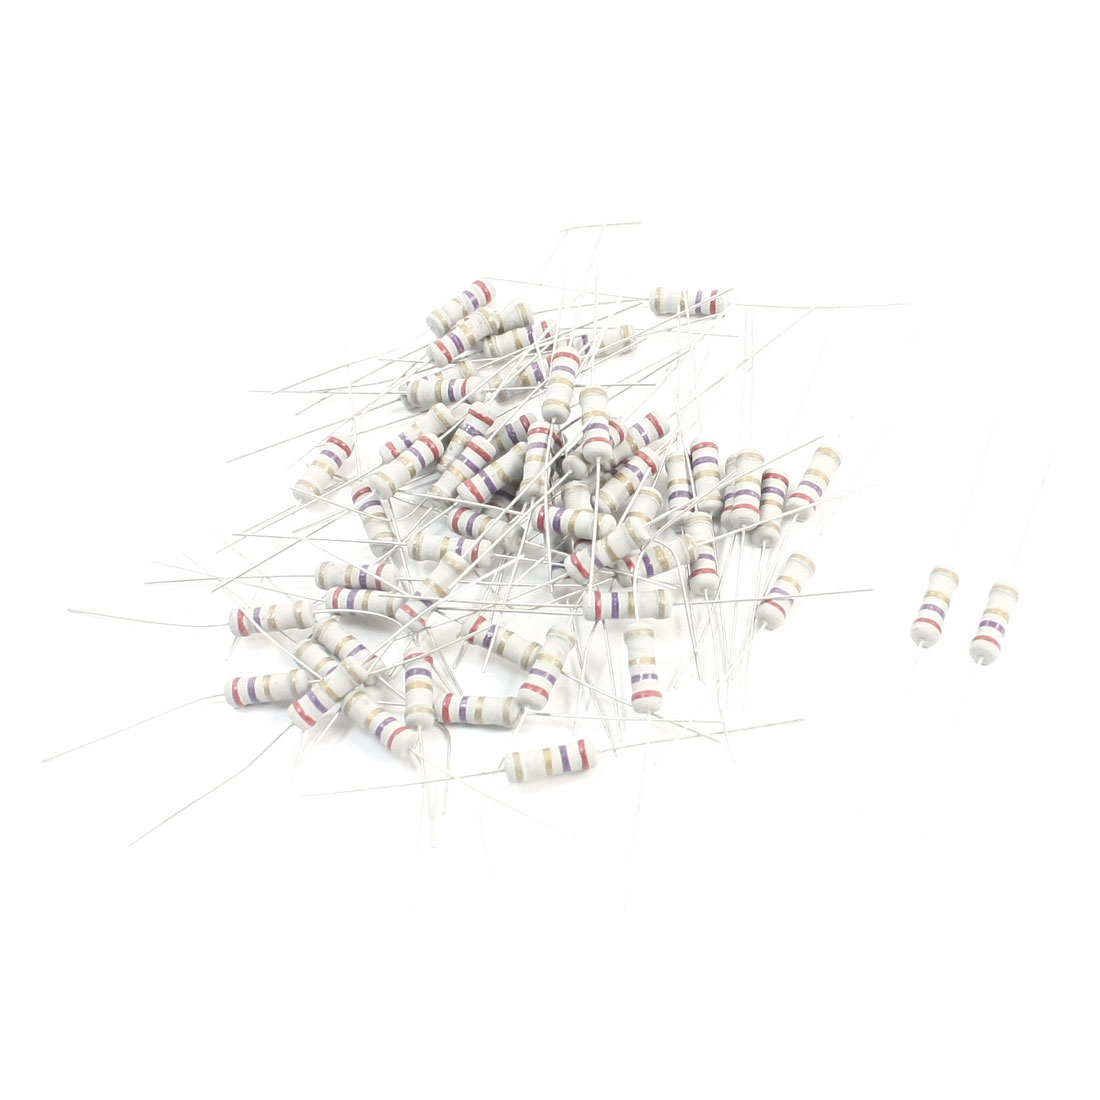 60Pcs 1W 2.7 Ohm Axial Lead Type PCB Surface Mounting Colored Ring Resistance Carbon Film Resistor 3.5mm x 11mm